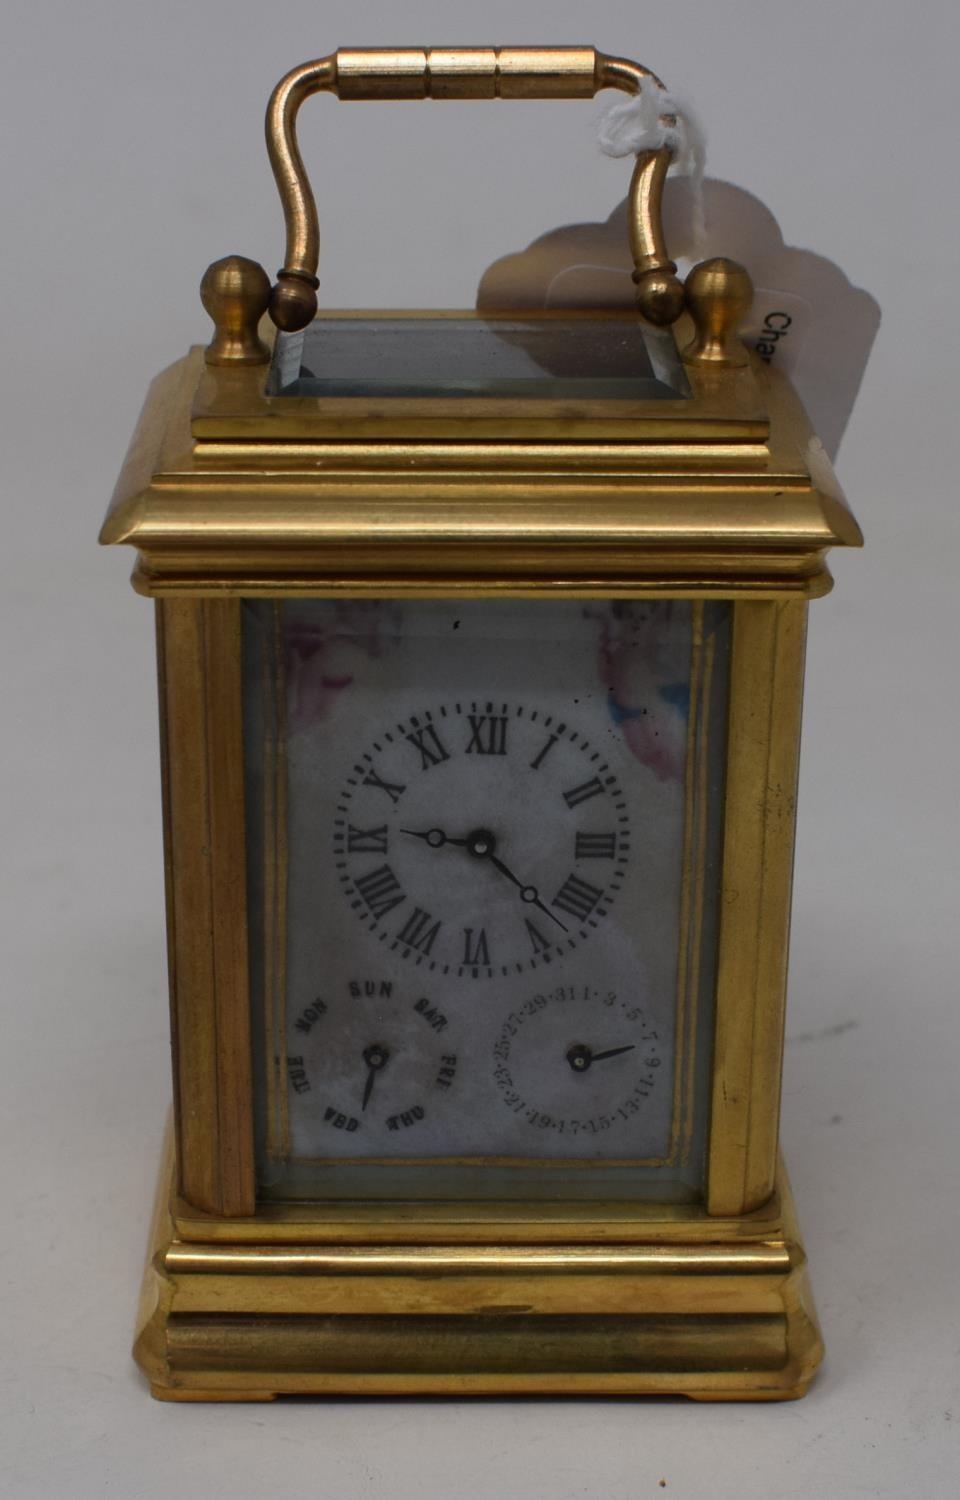 A modern brass carriage clock, inset with painted porcelain panels, 10 cm high